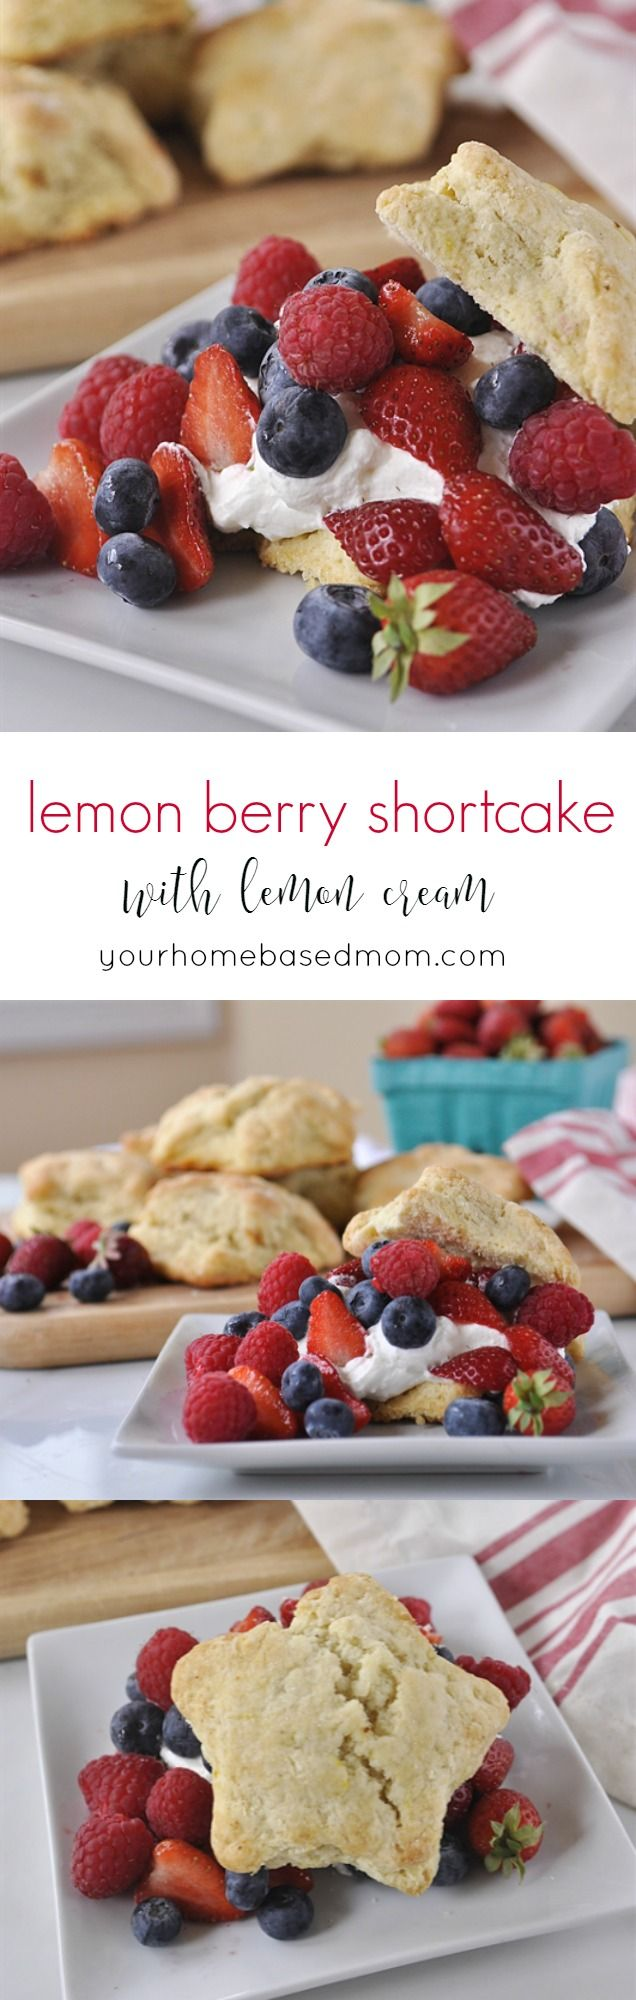 Lemon Berry Shortcakes with Lemon Cream - perfect for your summer BBQ's and 4th of July